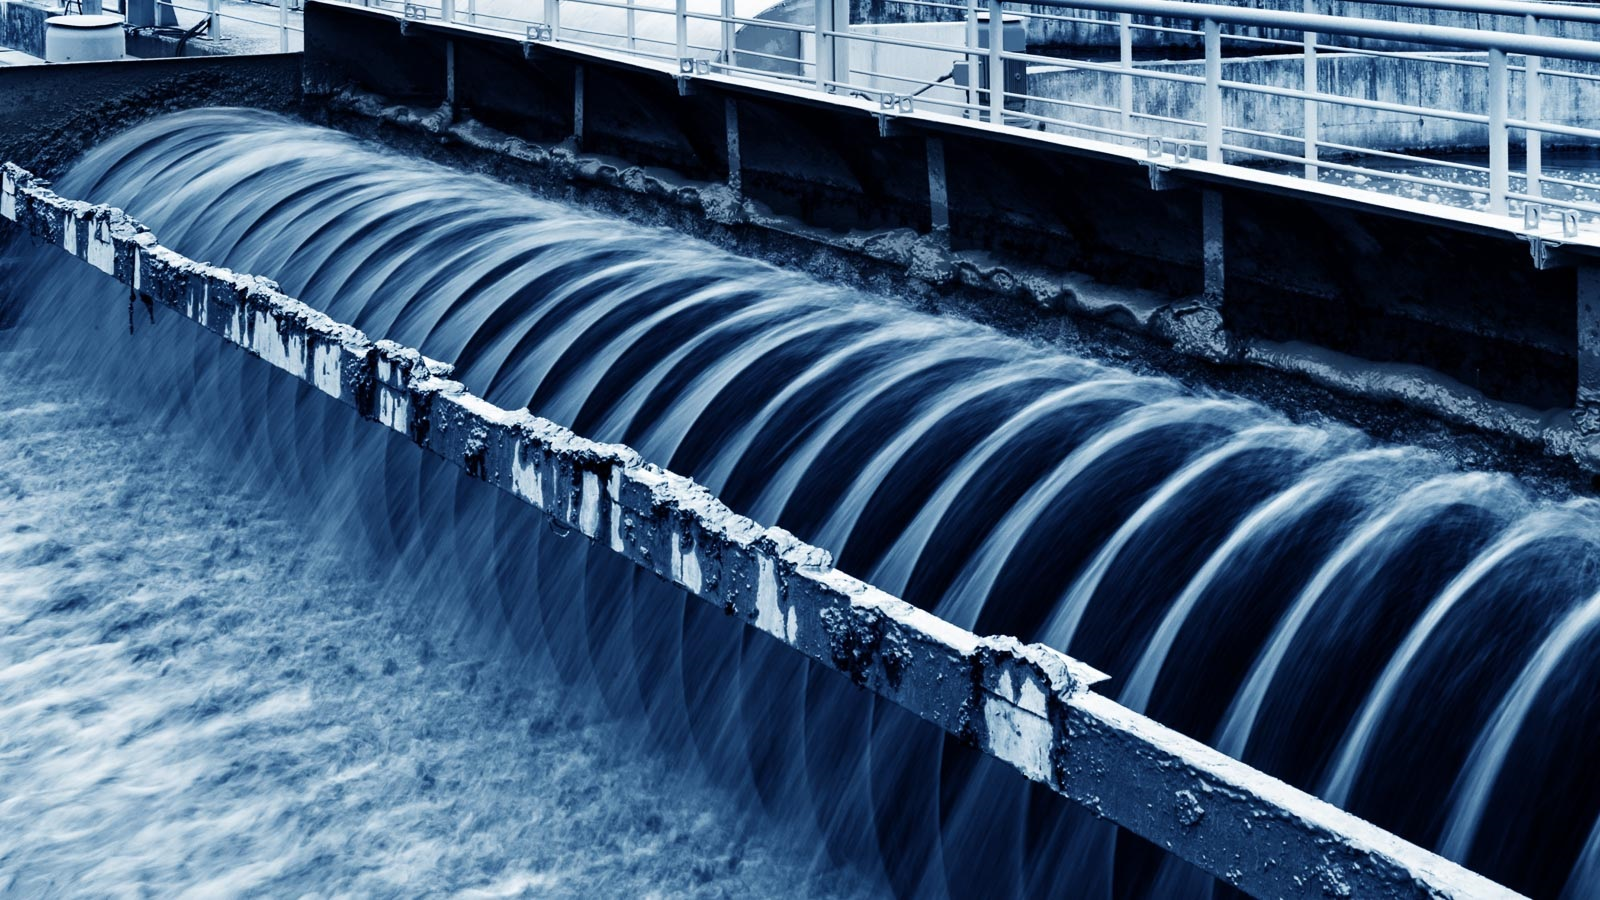 Argonne researchers are investigating how COVID-19 spreads by sampling wastewater from facilities like the one shown here. (Image by Shutterstock/hxdyl.)